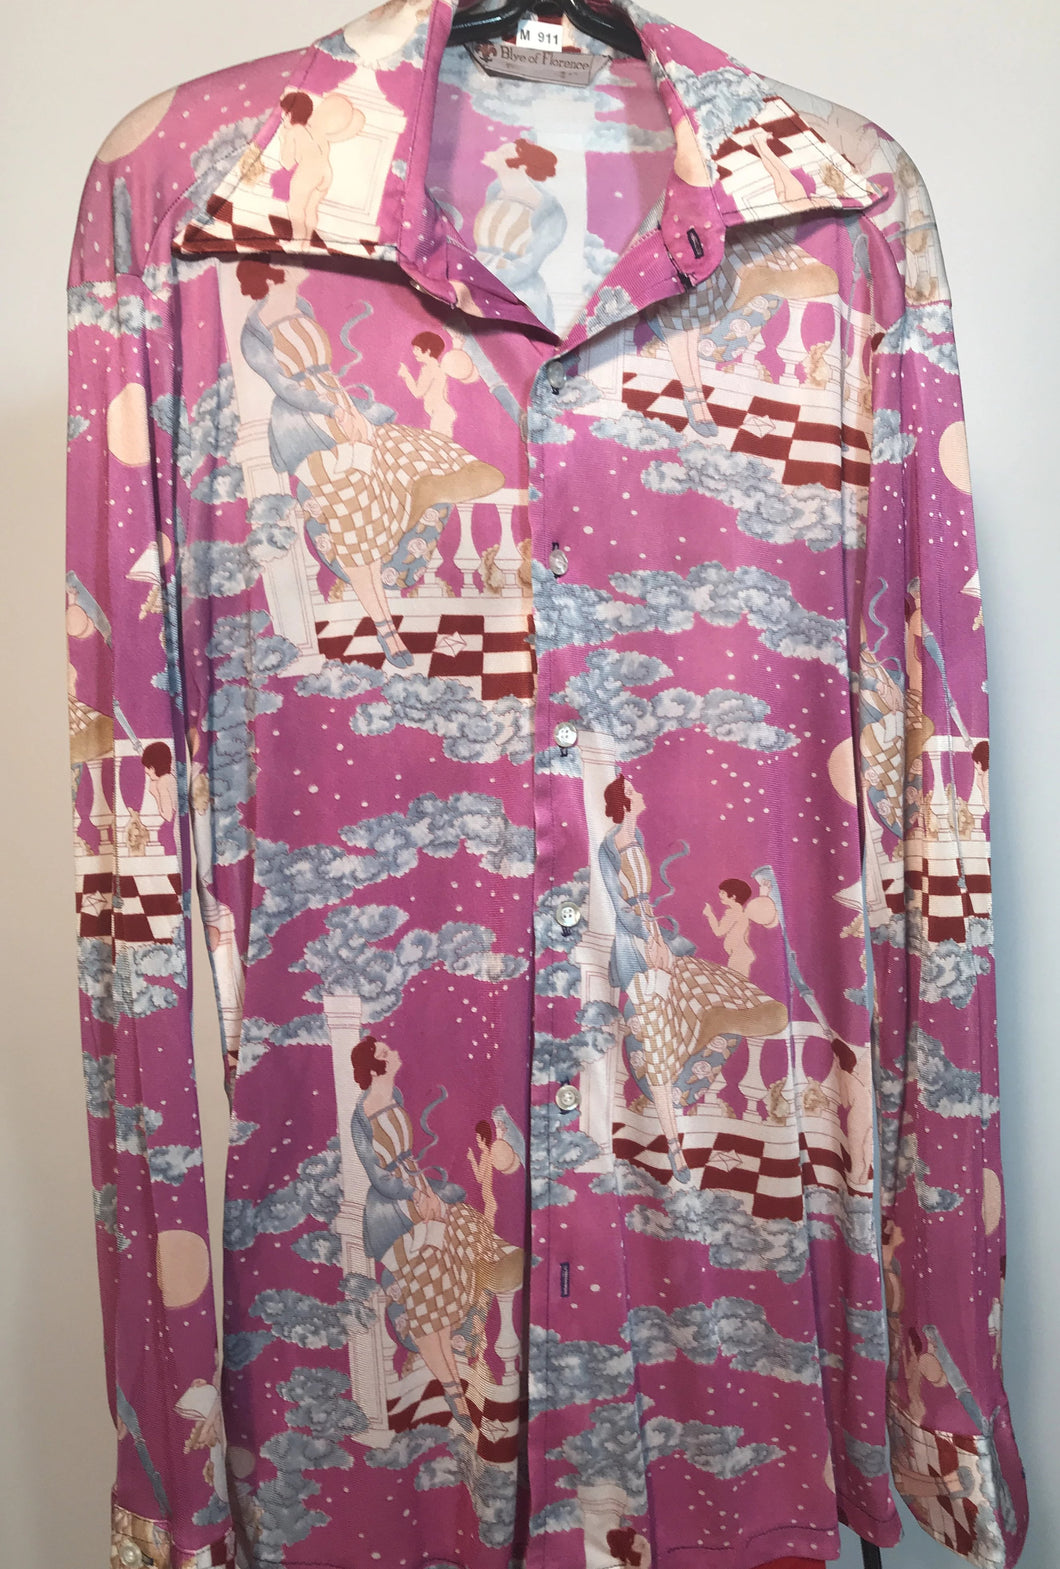 Men's Polyester Disco Shirt Blye Of Florence Size Medium RENTAL M991